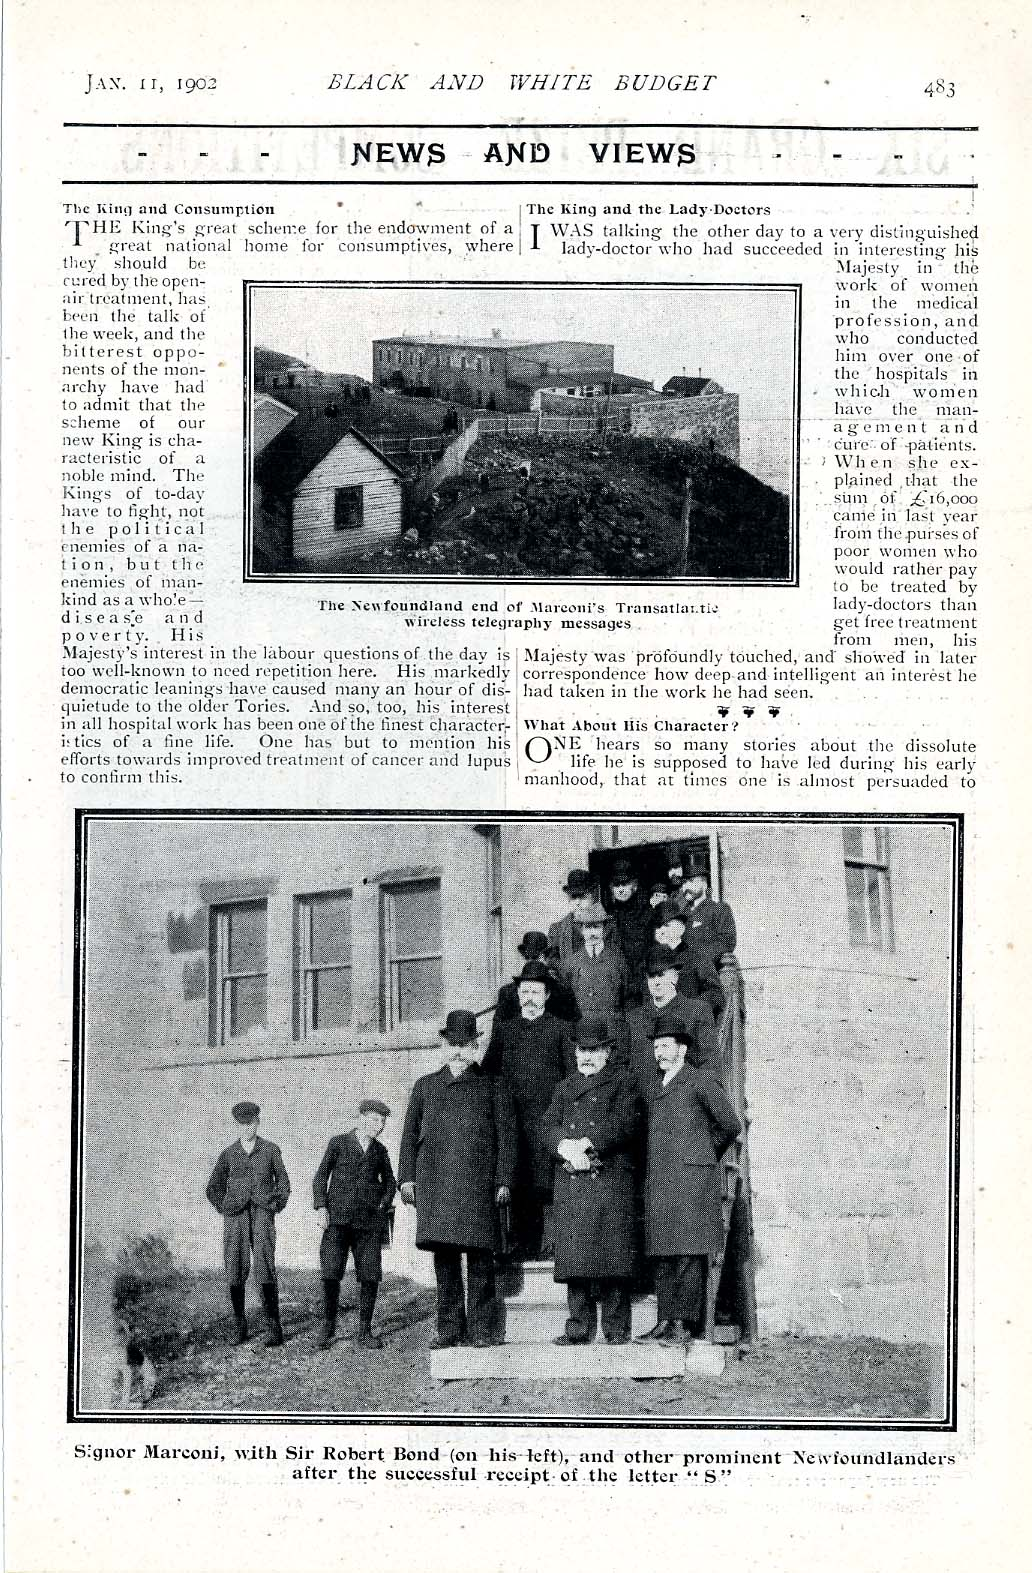 A Page from the The Black and White Illustrated Budget, 11 January 1902, with Illustrations from the Site of Marconi's Receiving Station